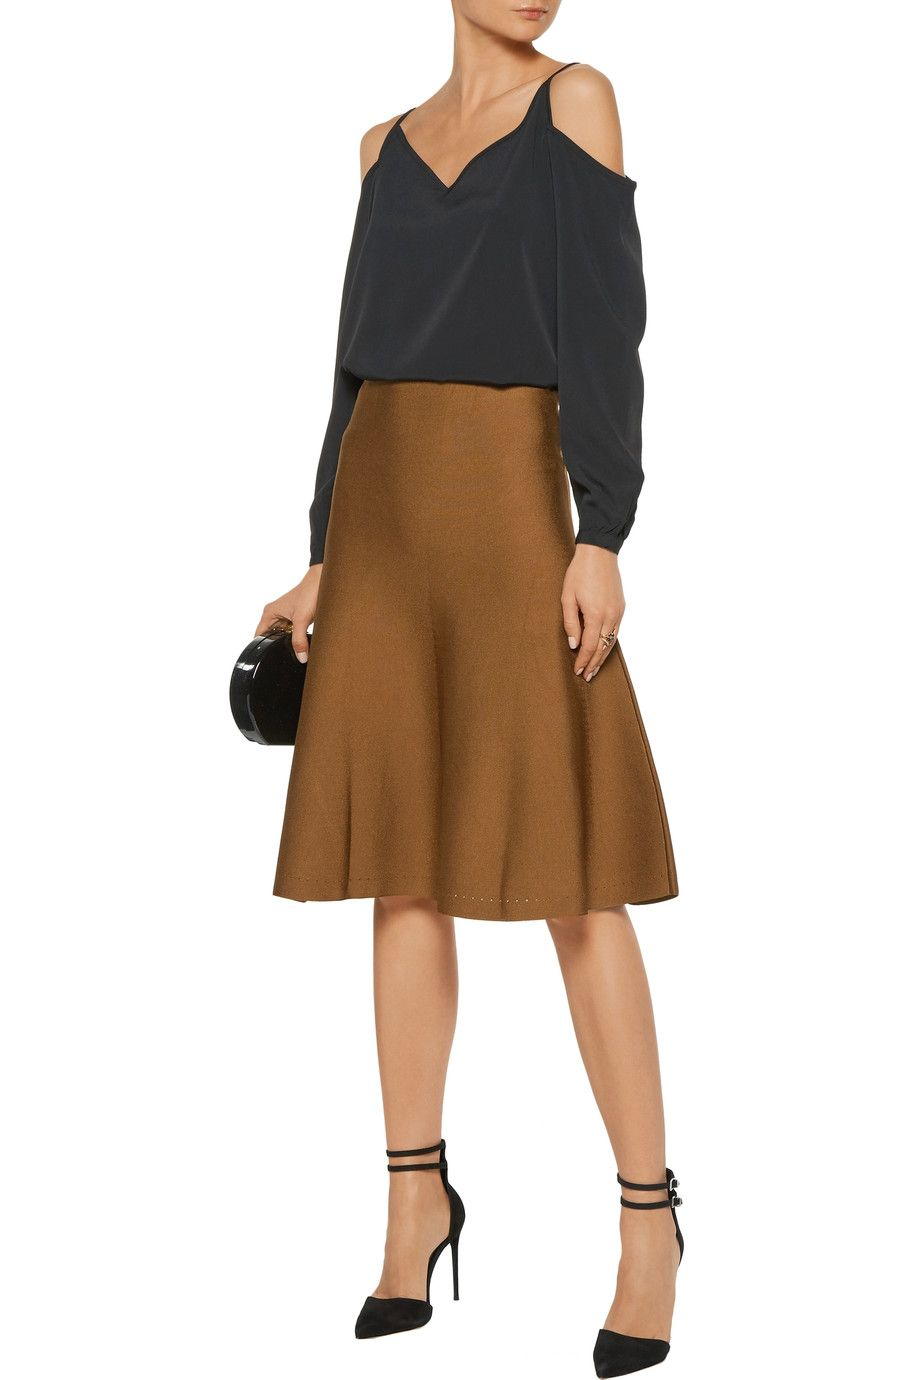 Shop on-sale Cushnie et Ochs Pleated stretch-knit skirt . Browse other  discount